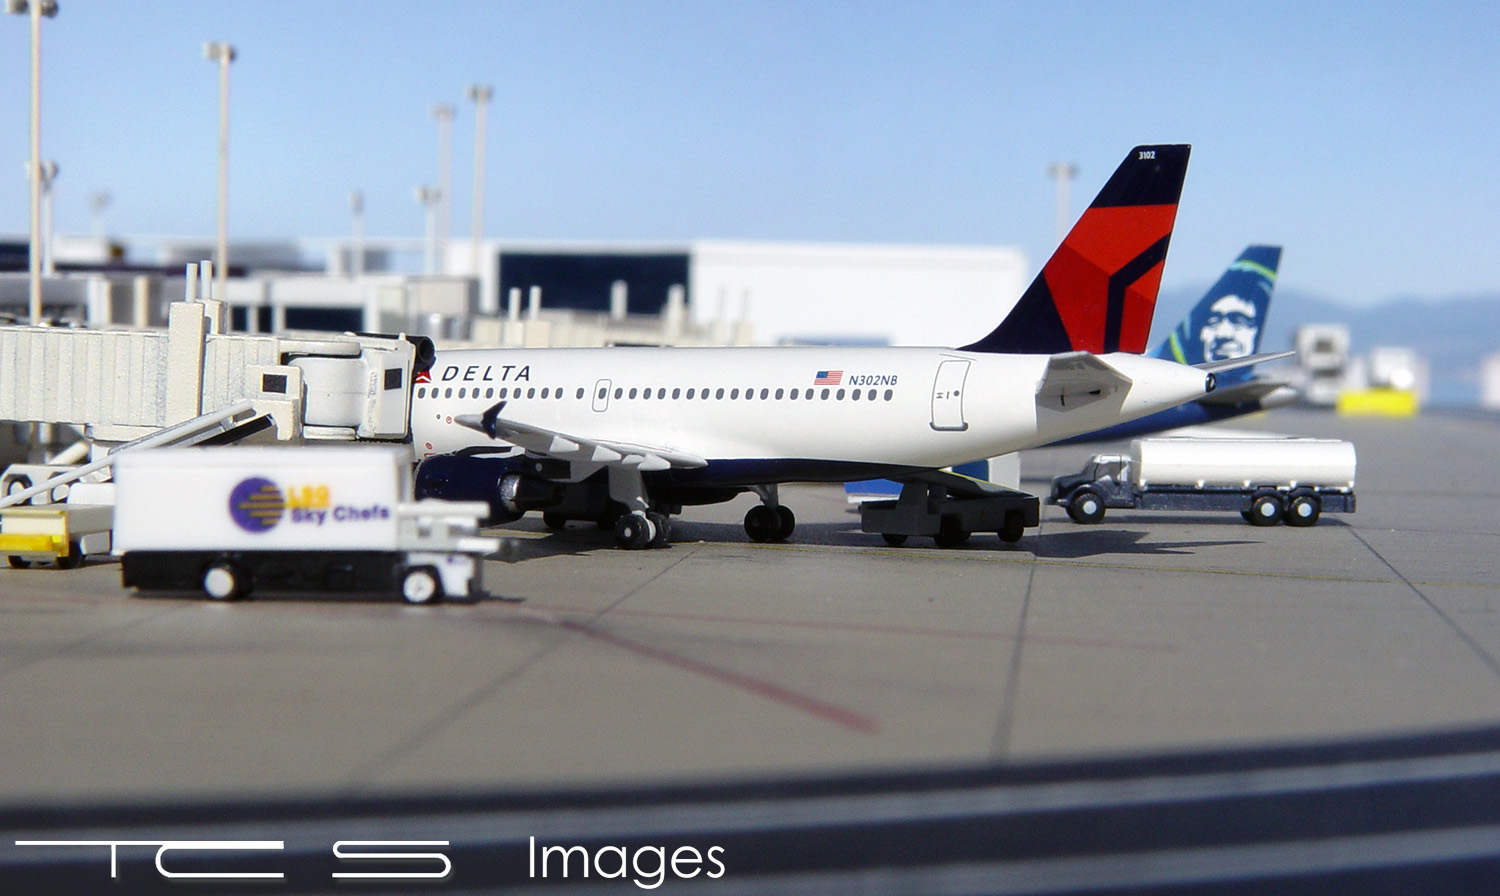 Delta Airlines A319